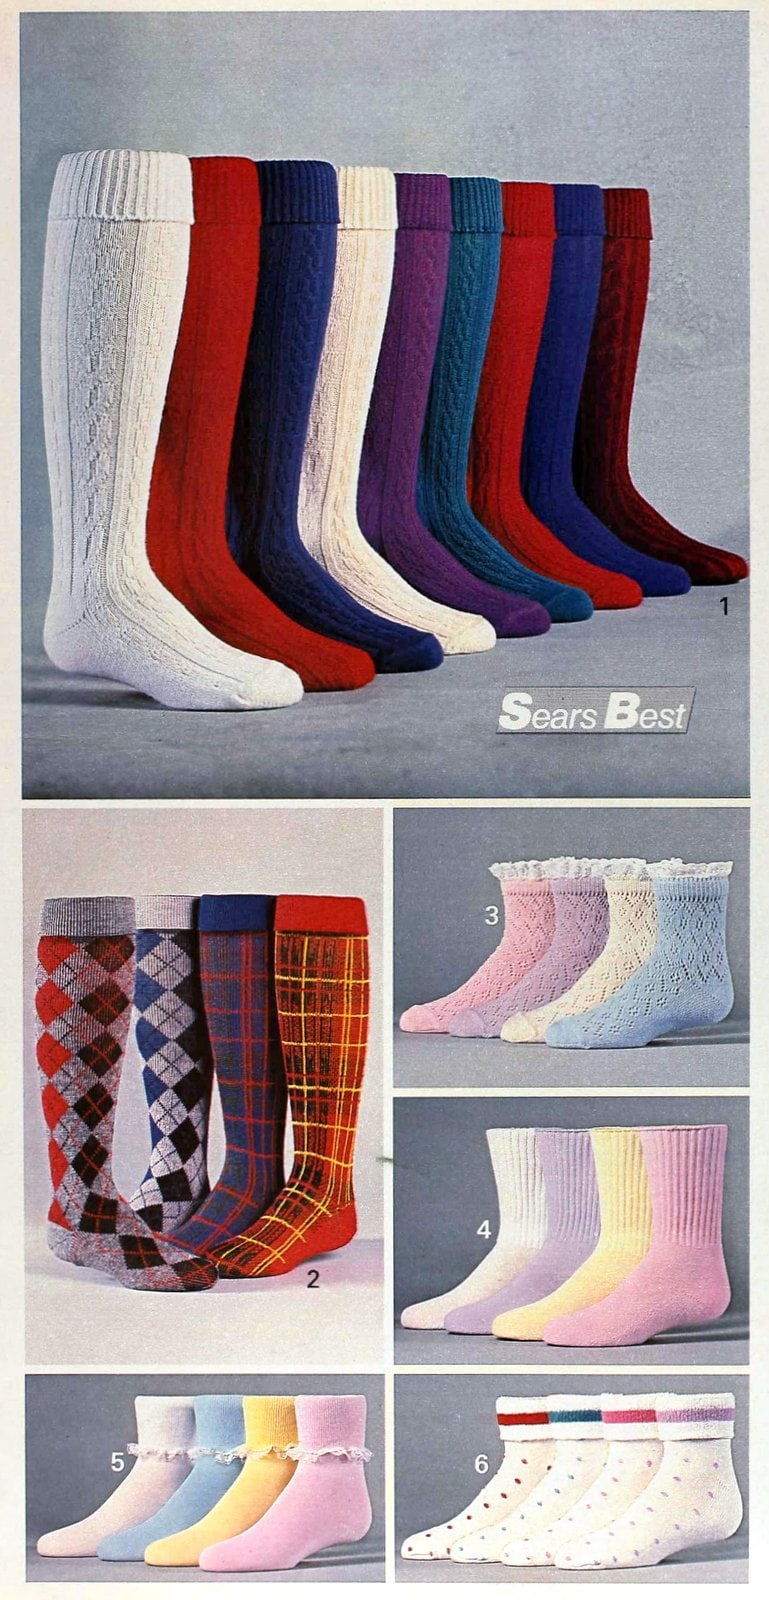 Six Sears sock collections from the late 80s